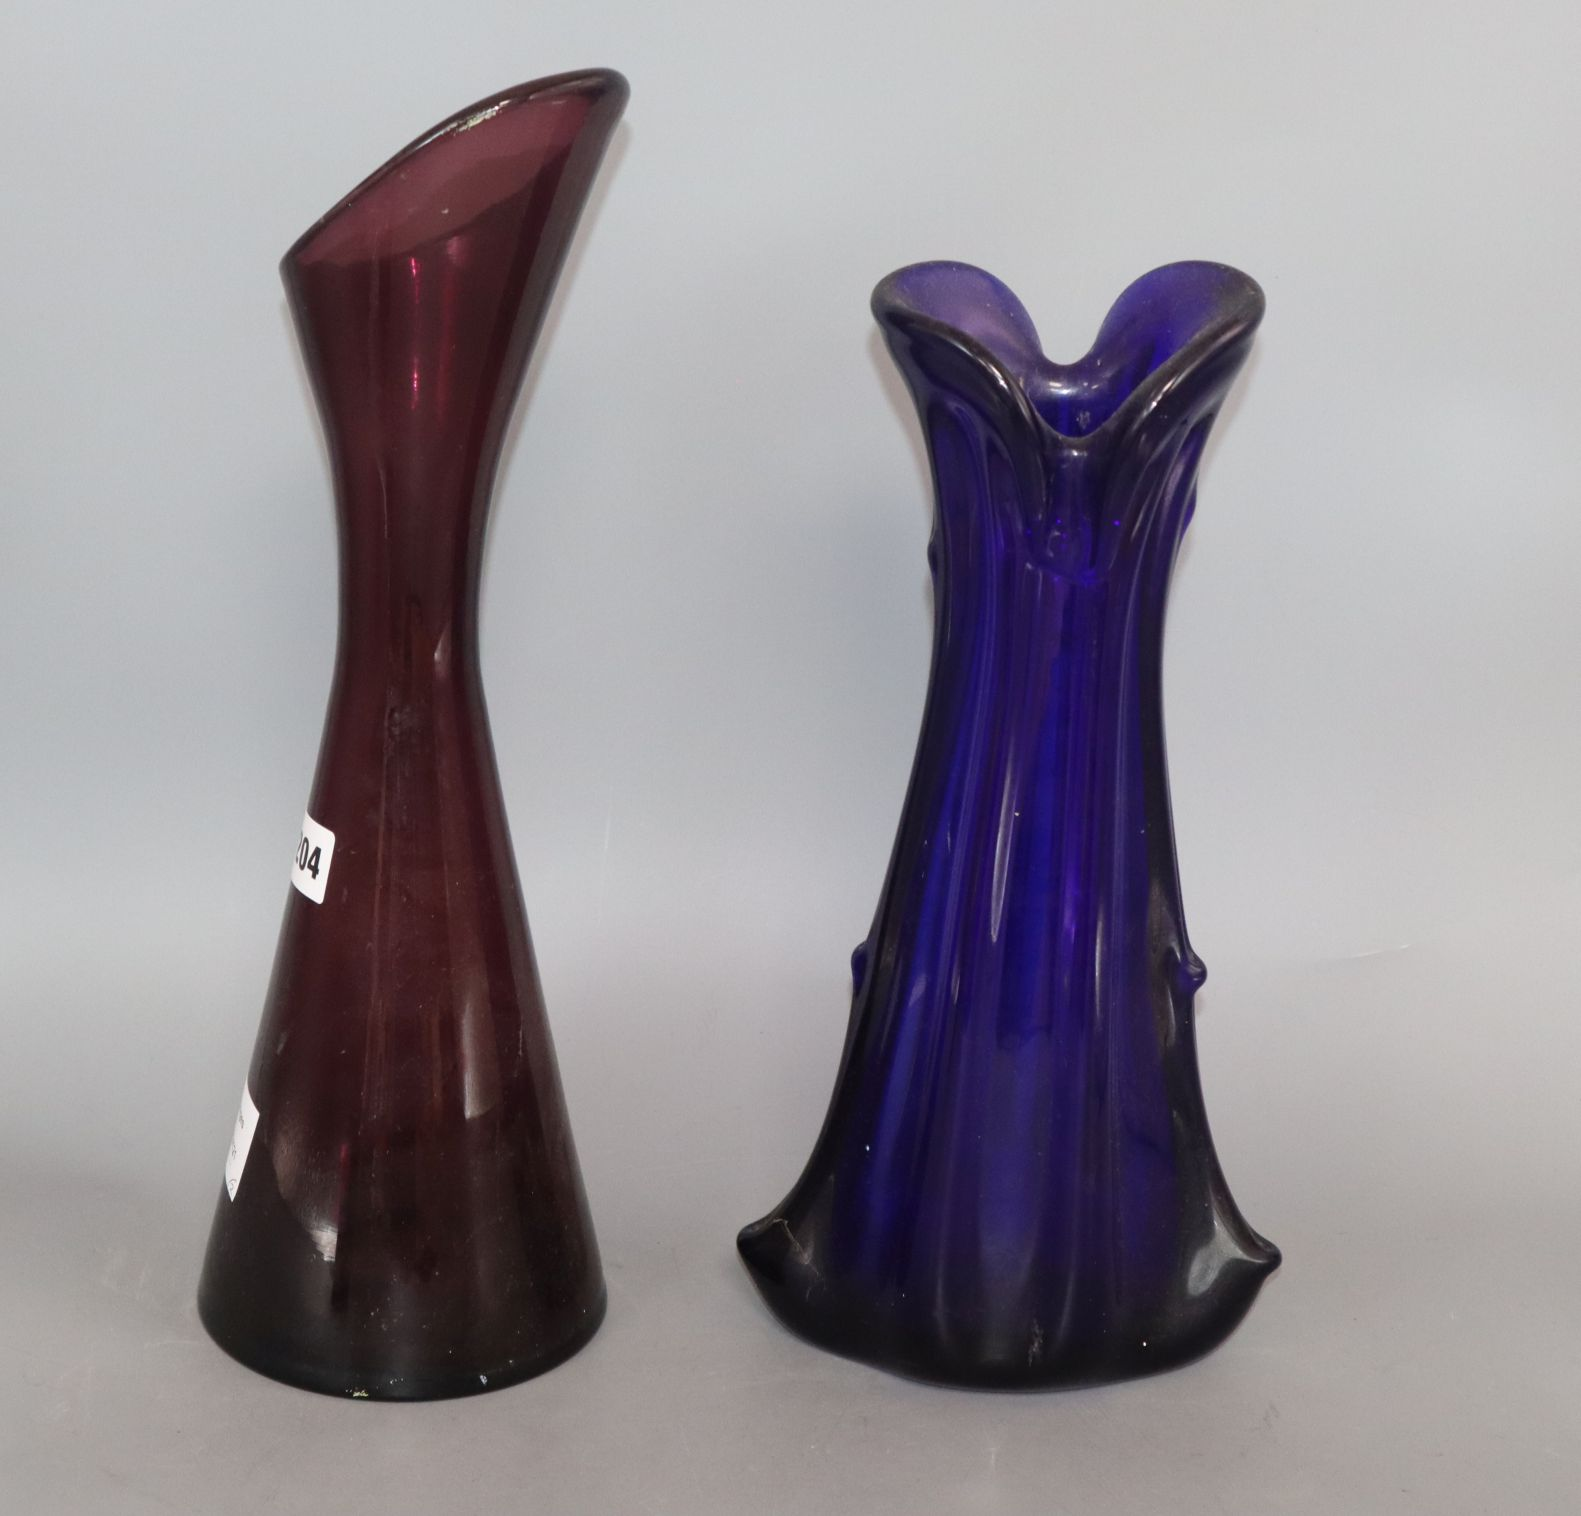 Lot 155 - A 1950's amethyst glass vase and a knobbly blue glass vase height 40cm